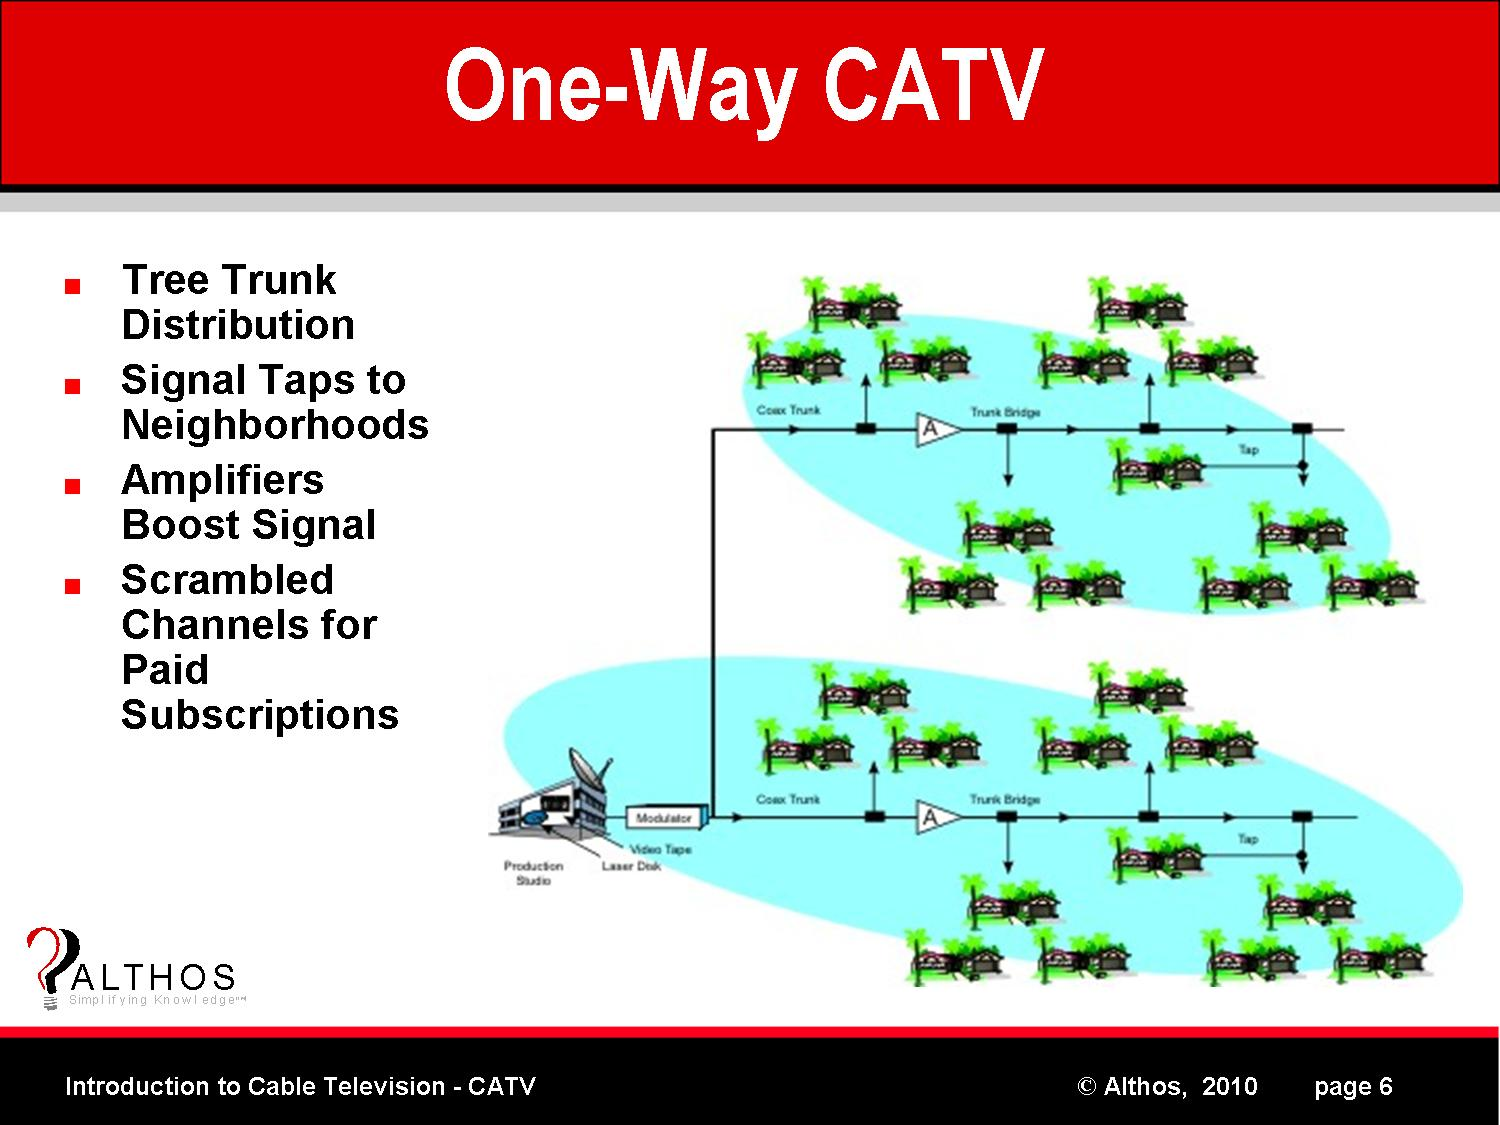 Cat V Wiring Diagram : Introduction to catv one way cable tv system